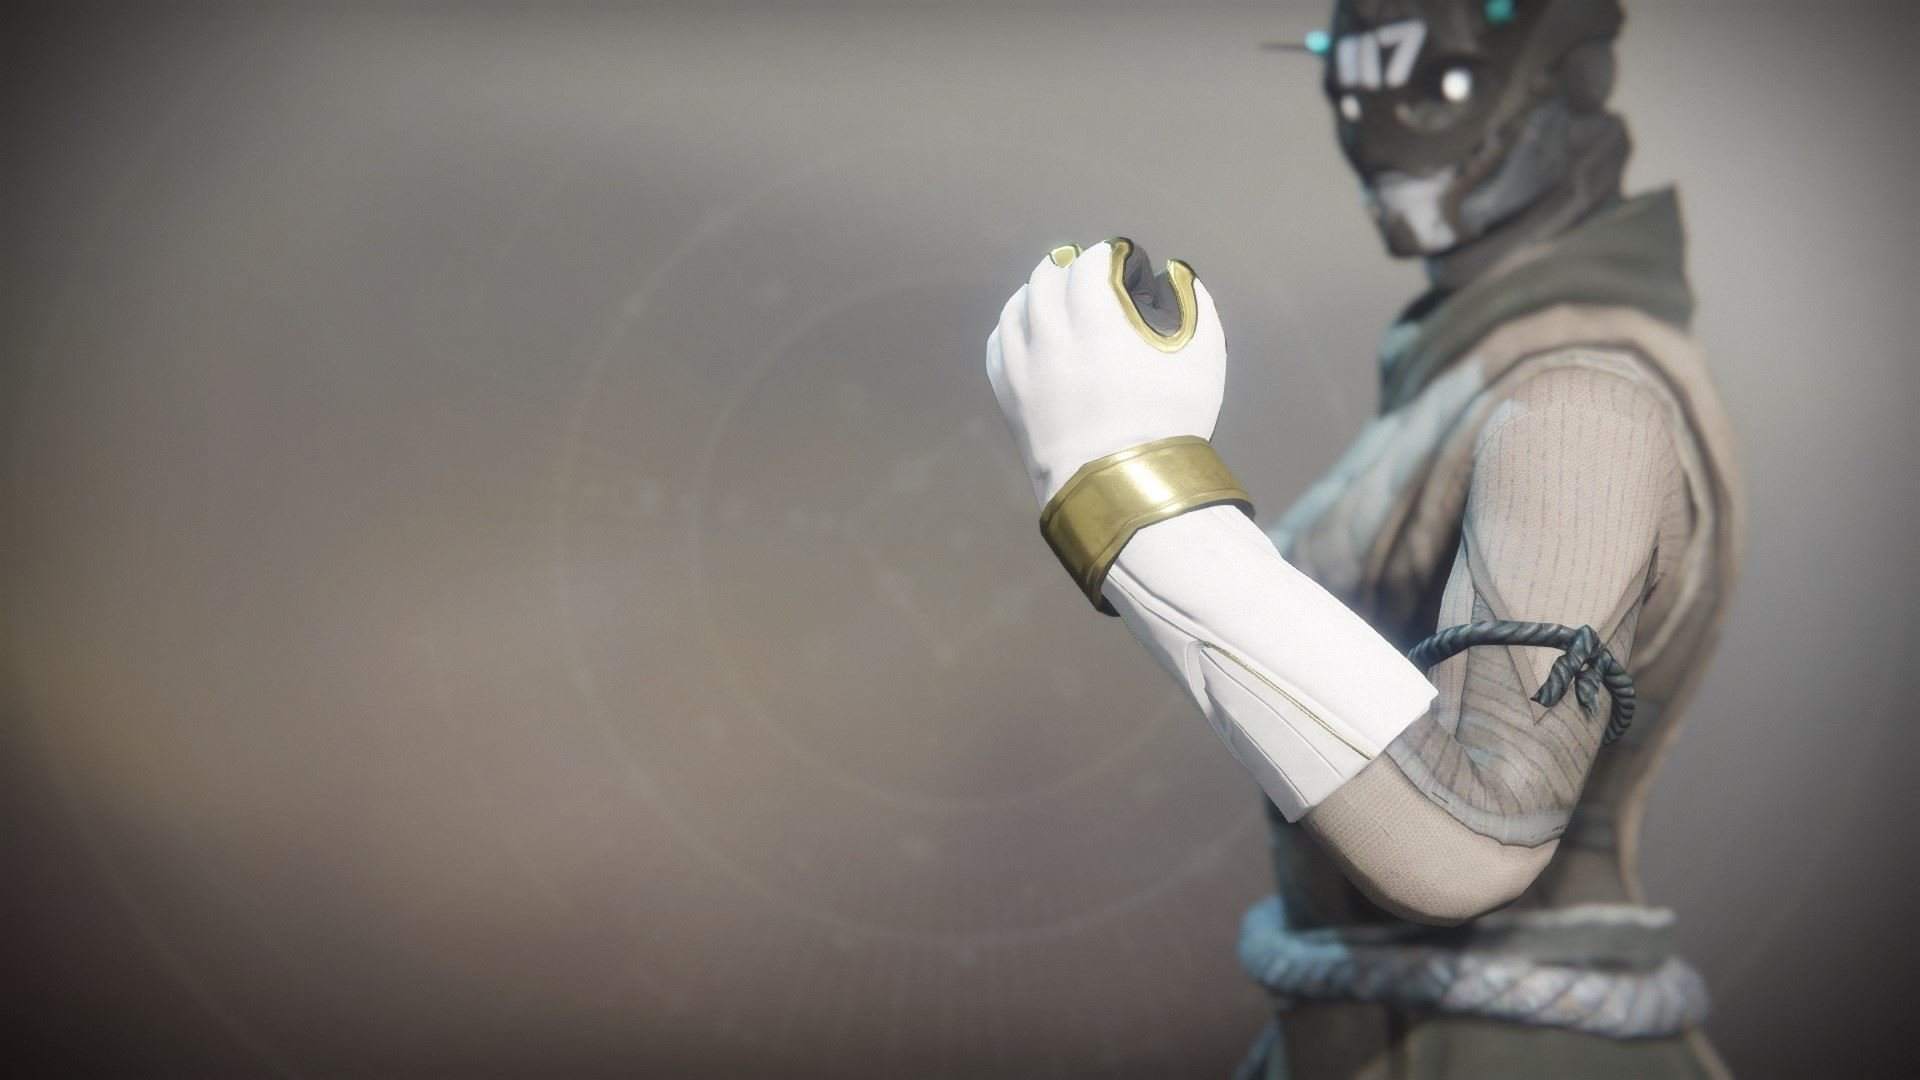 An in-game render of the Solstice Gloves (Resplendent).